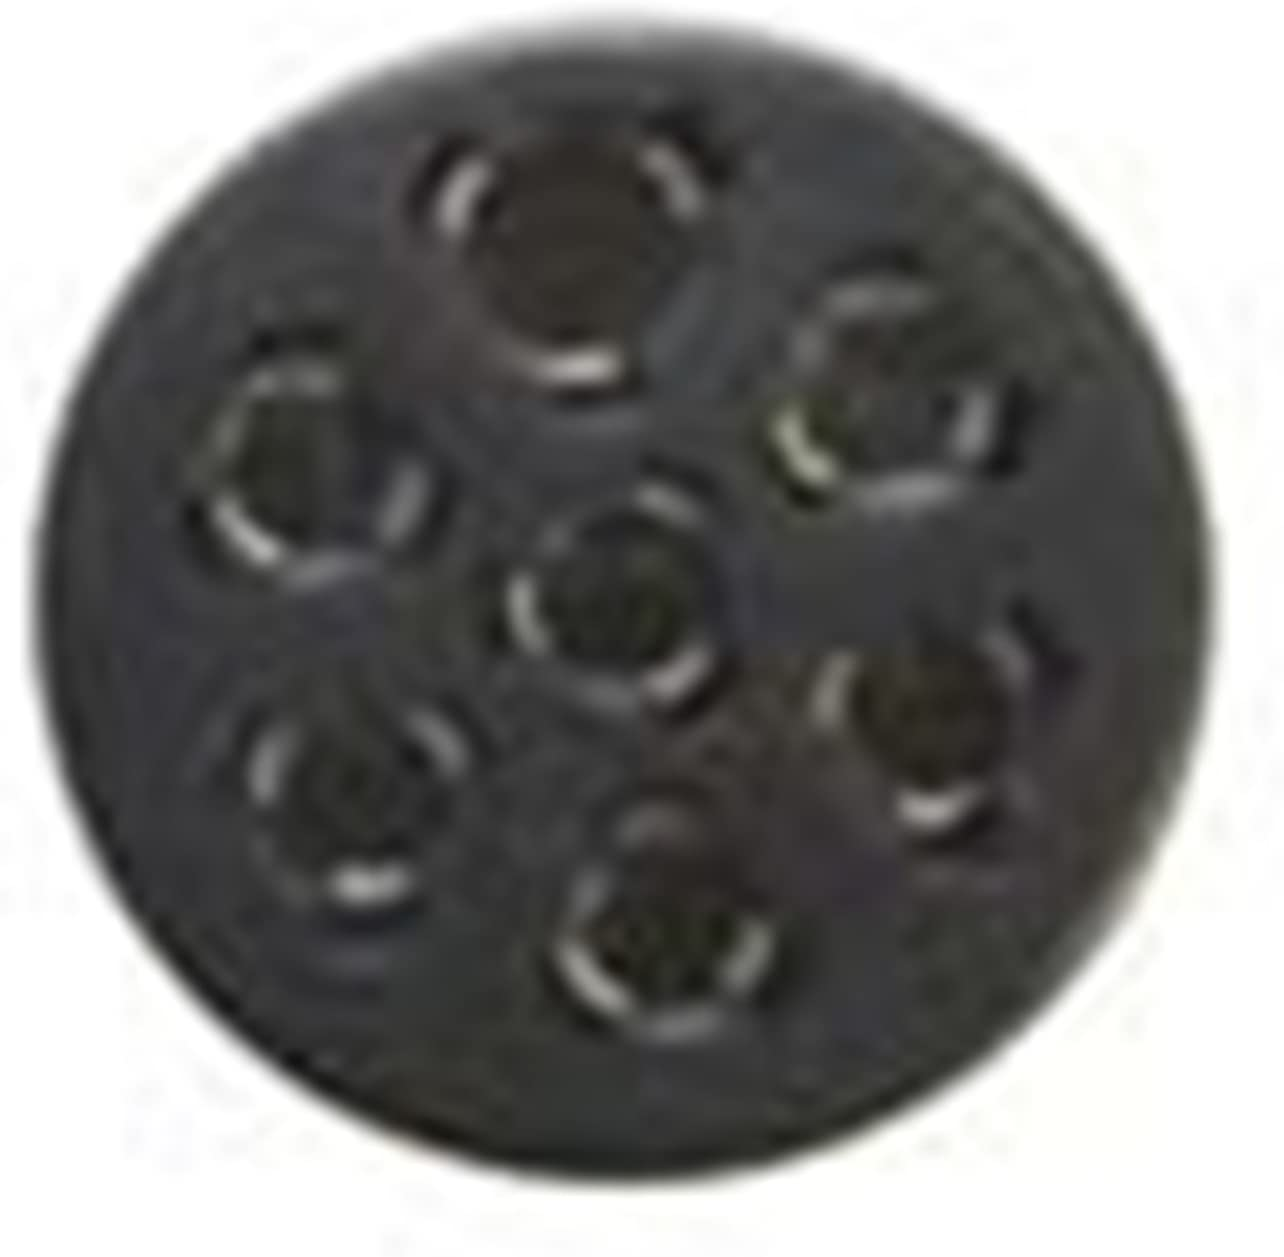 Hopkins 47445 7 Pin Round to 6 Pole Round Adapter